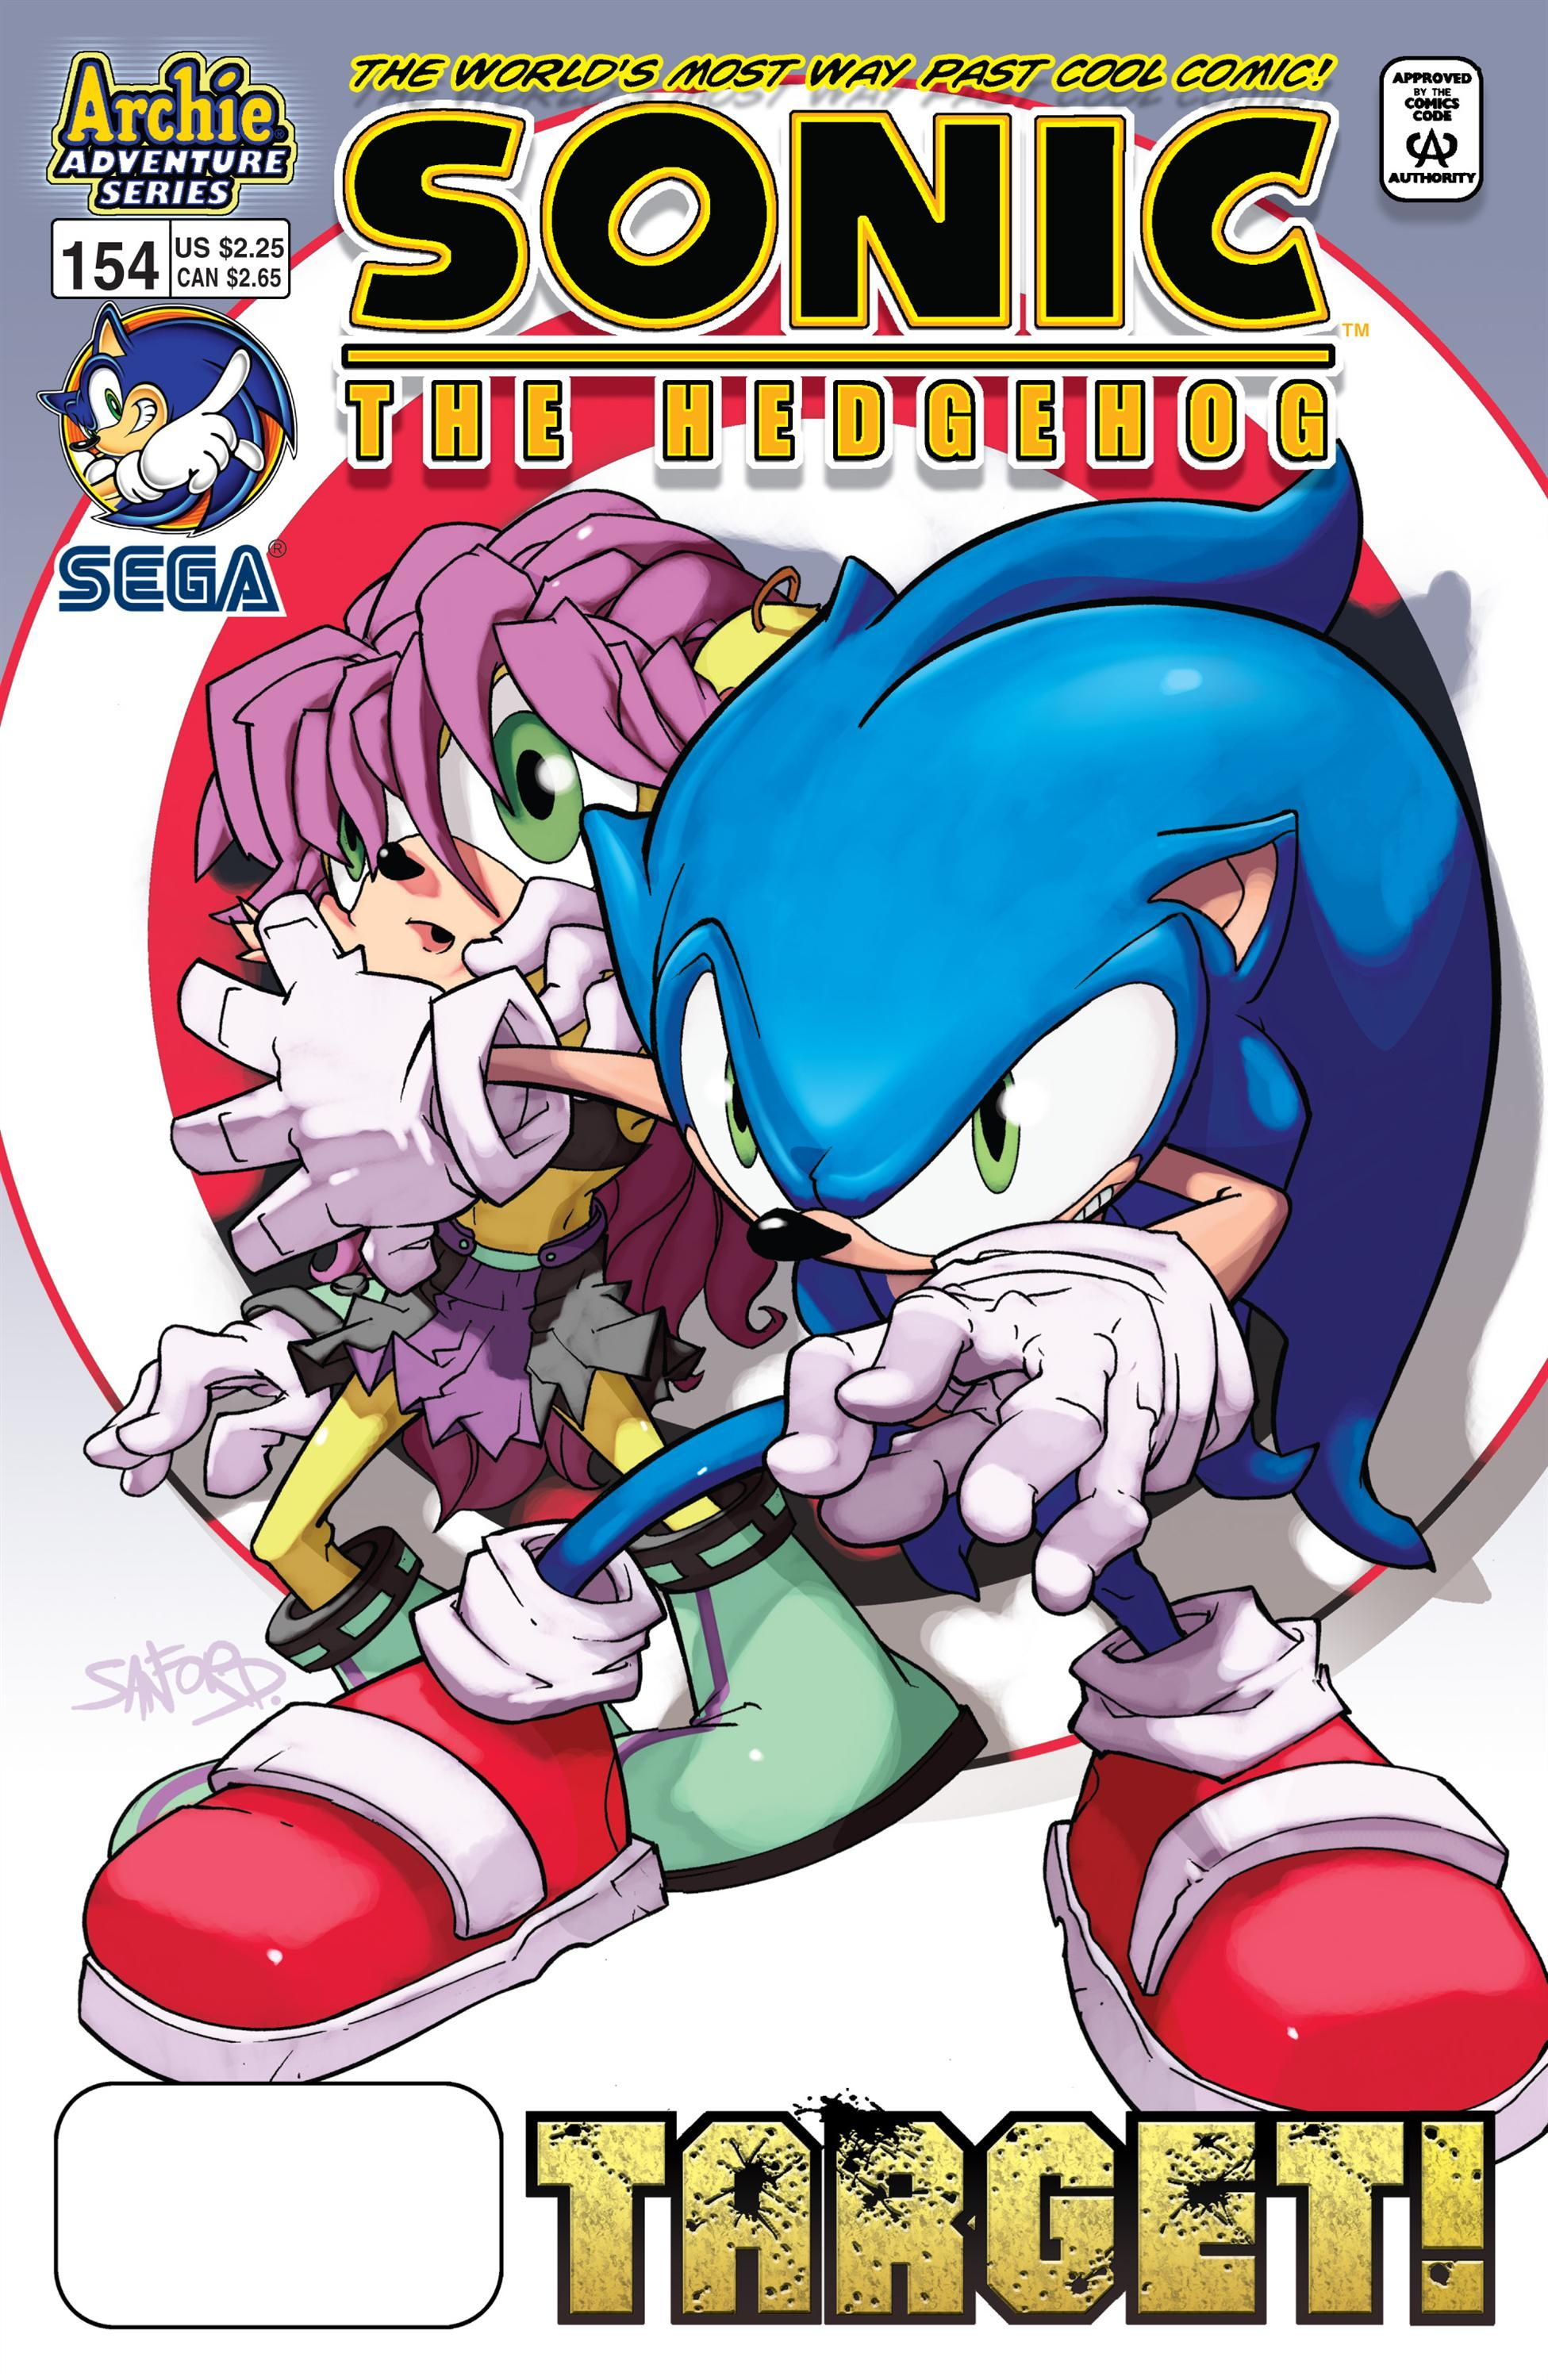 Archie Sonic the Hedgehog Issue 154